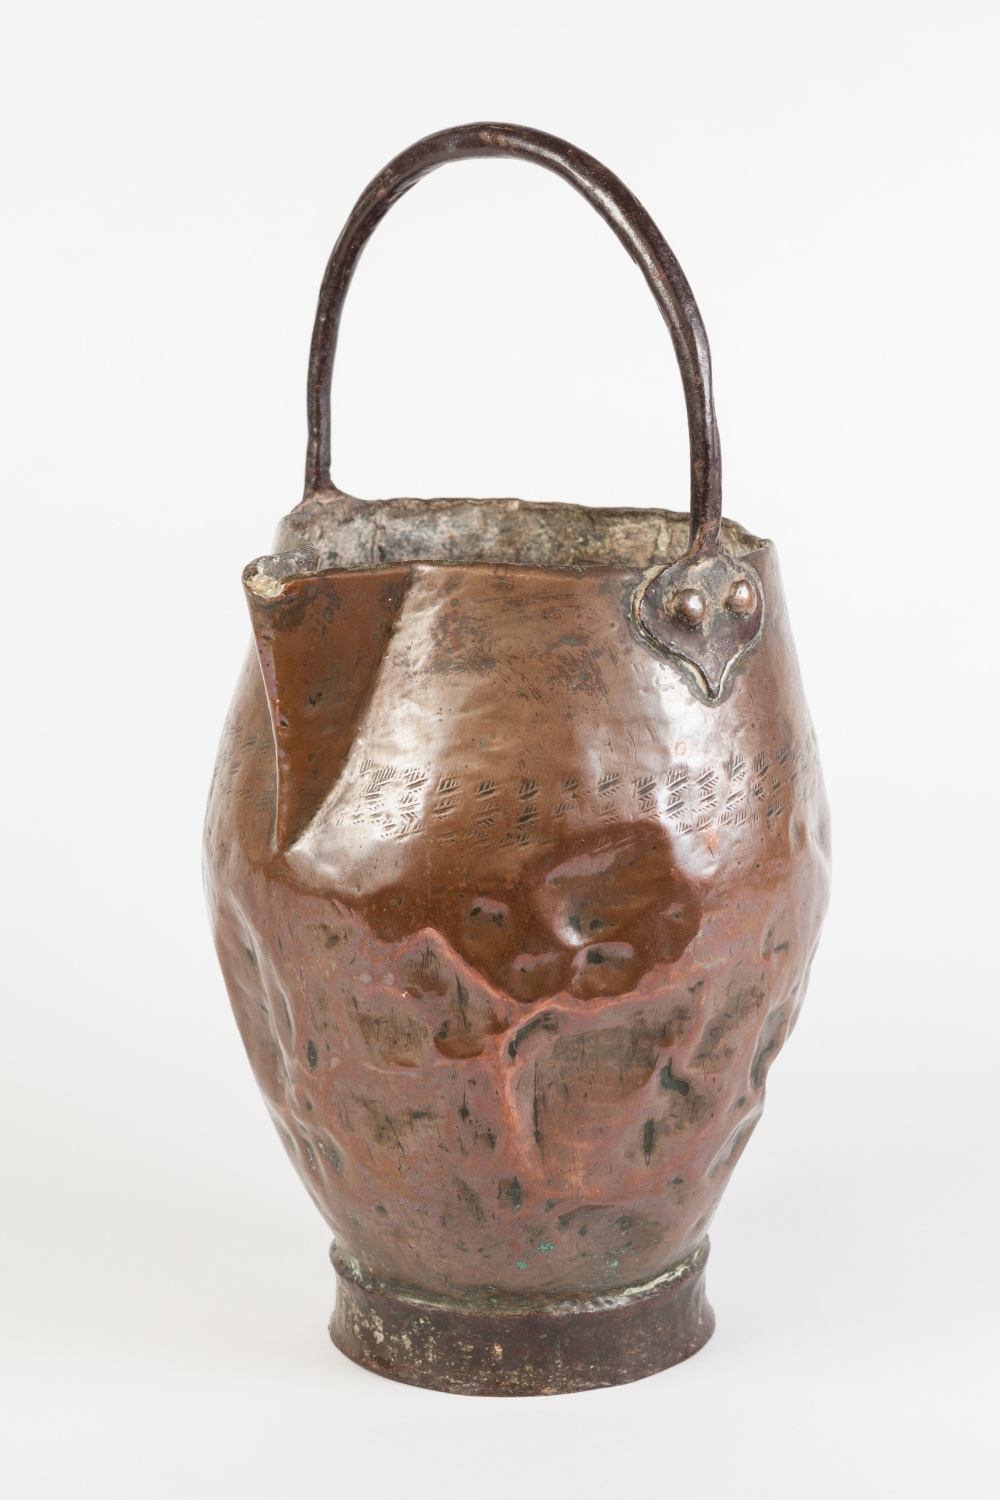 Lot 79 - AN ANTIQUE COPPER JUG, bellied form with pinched spout, hammered band marking, riveted overhead